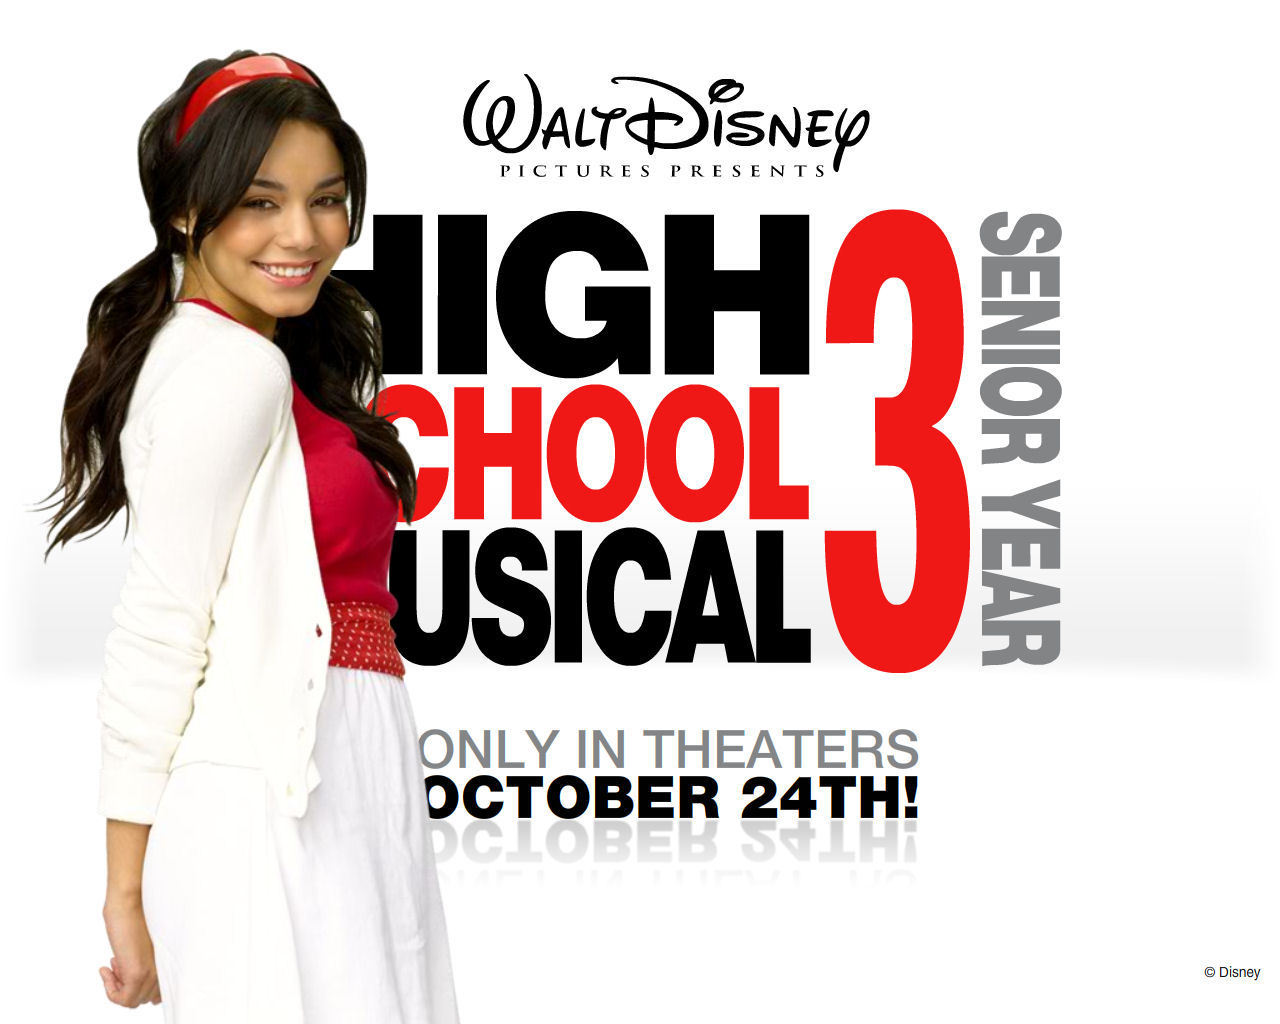 vanessa hudgens - High School Musical 3 1280x1024